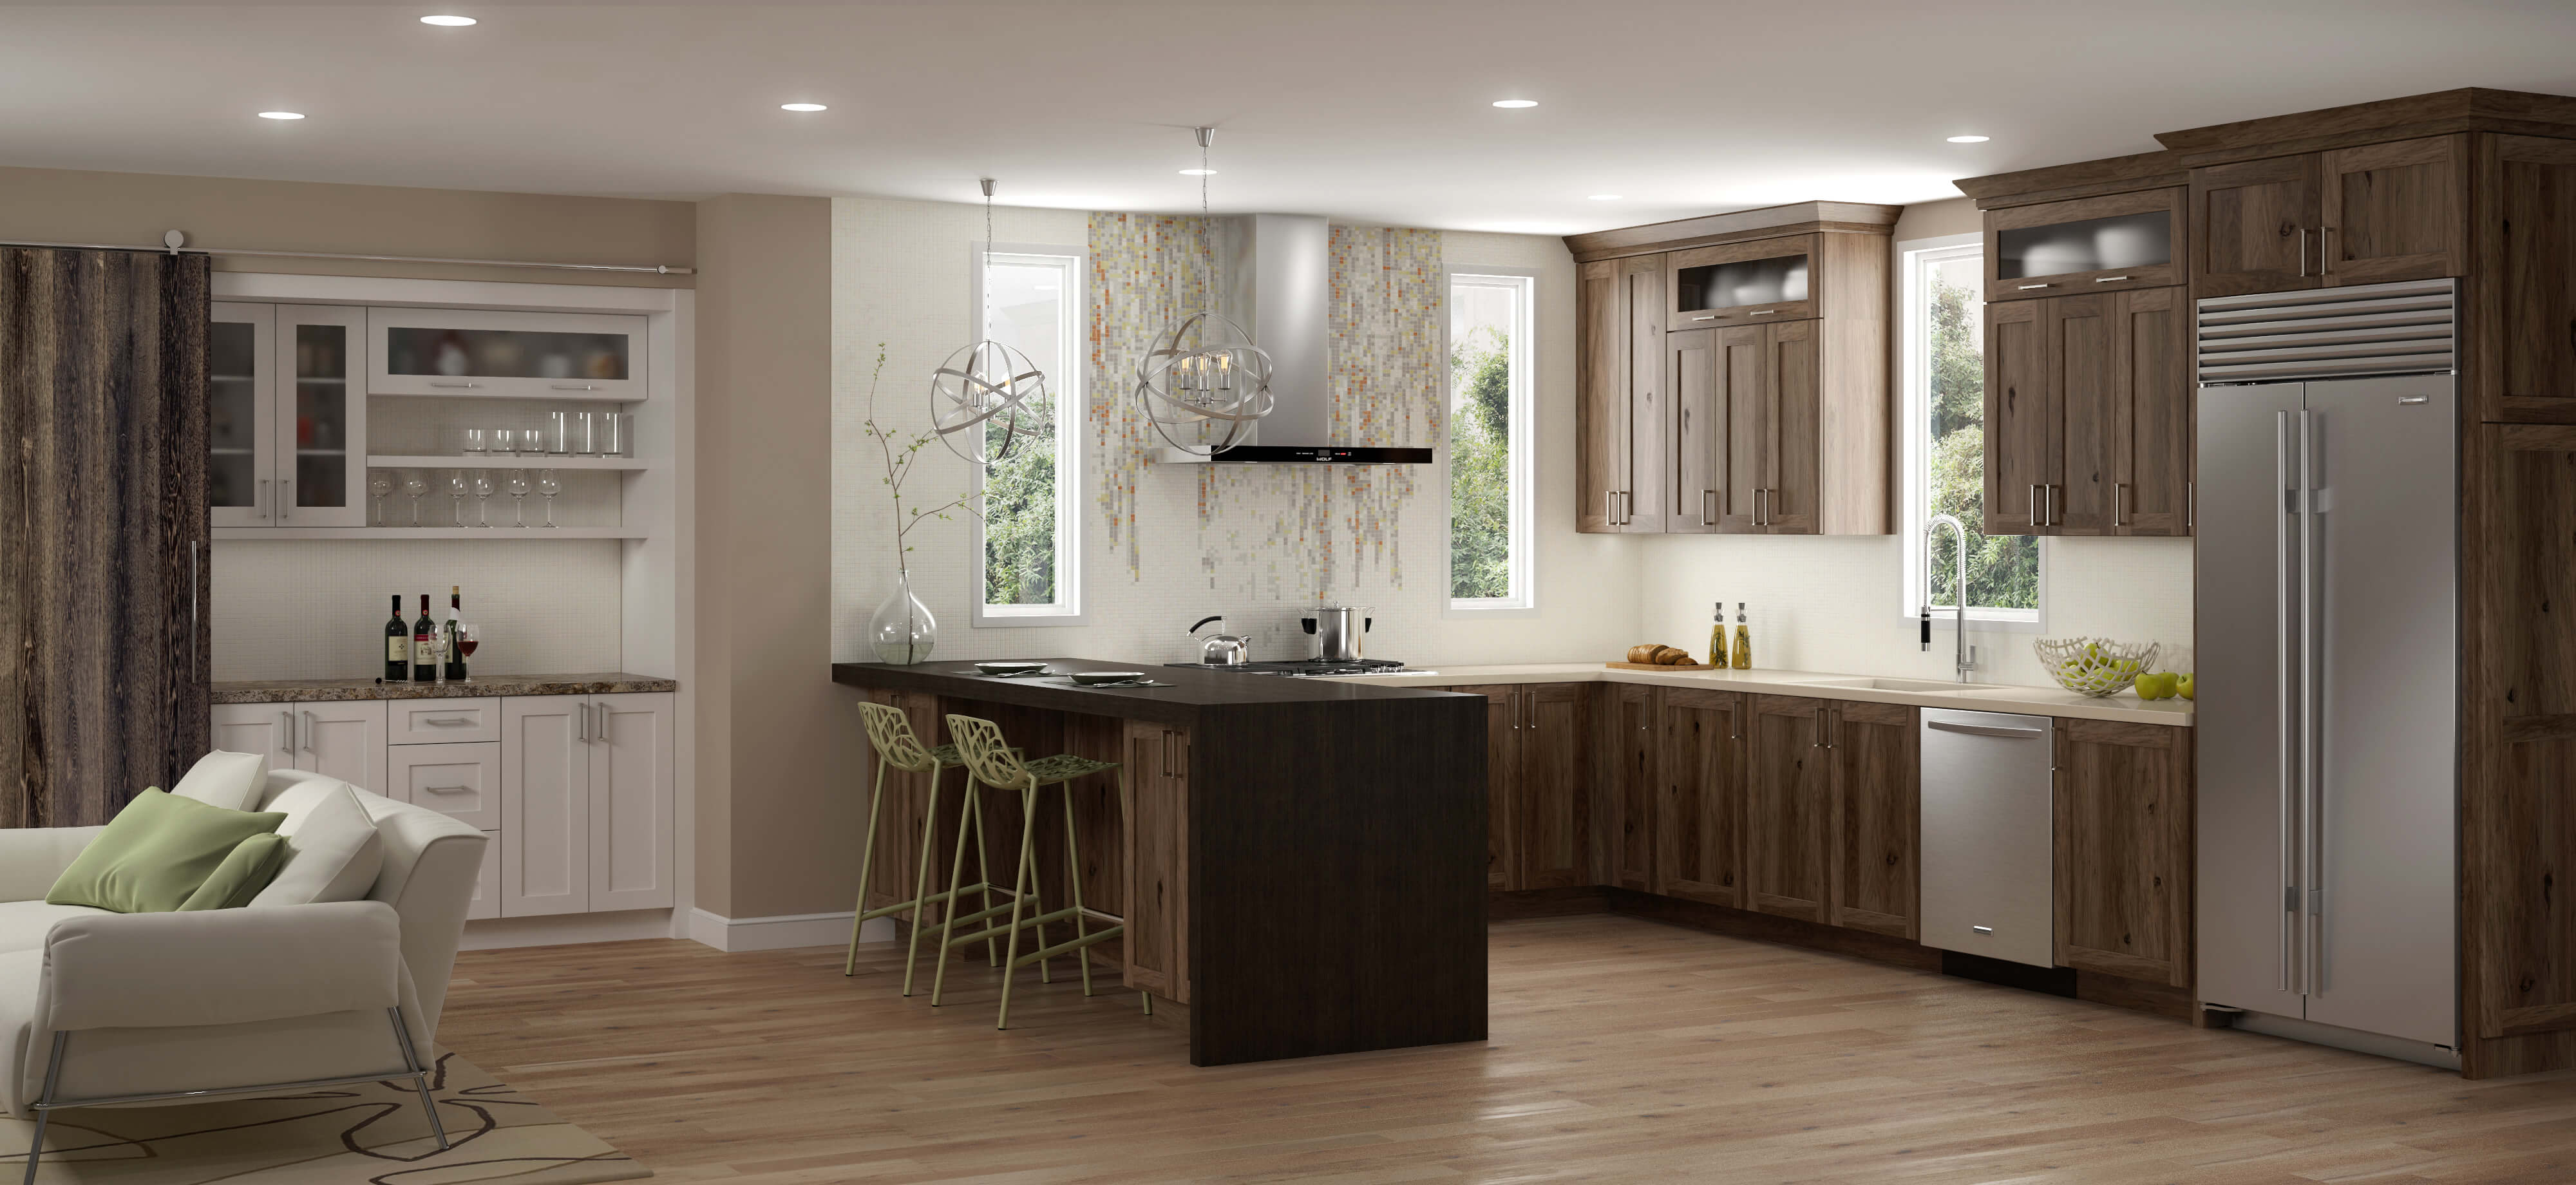 Modern Twist on Hickory Cabinetry in a finished Kitchen Remodel- Gray stained cabinets with beautiful wood grain.